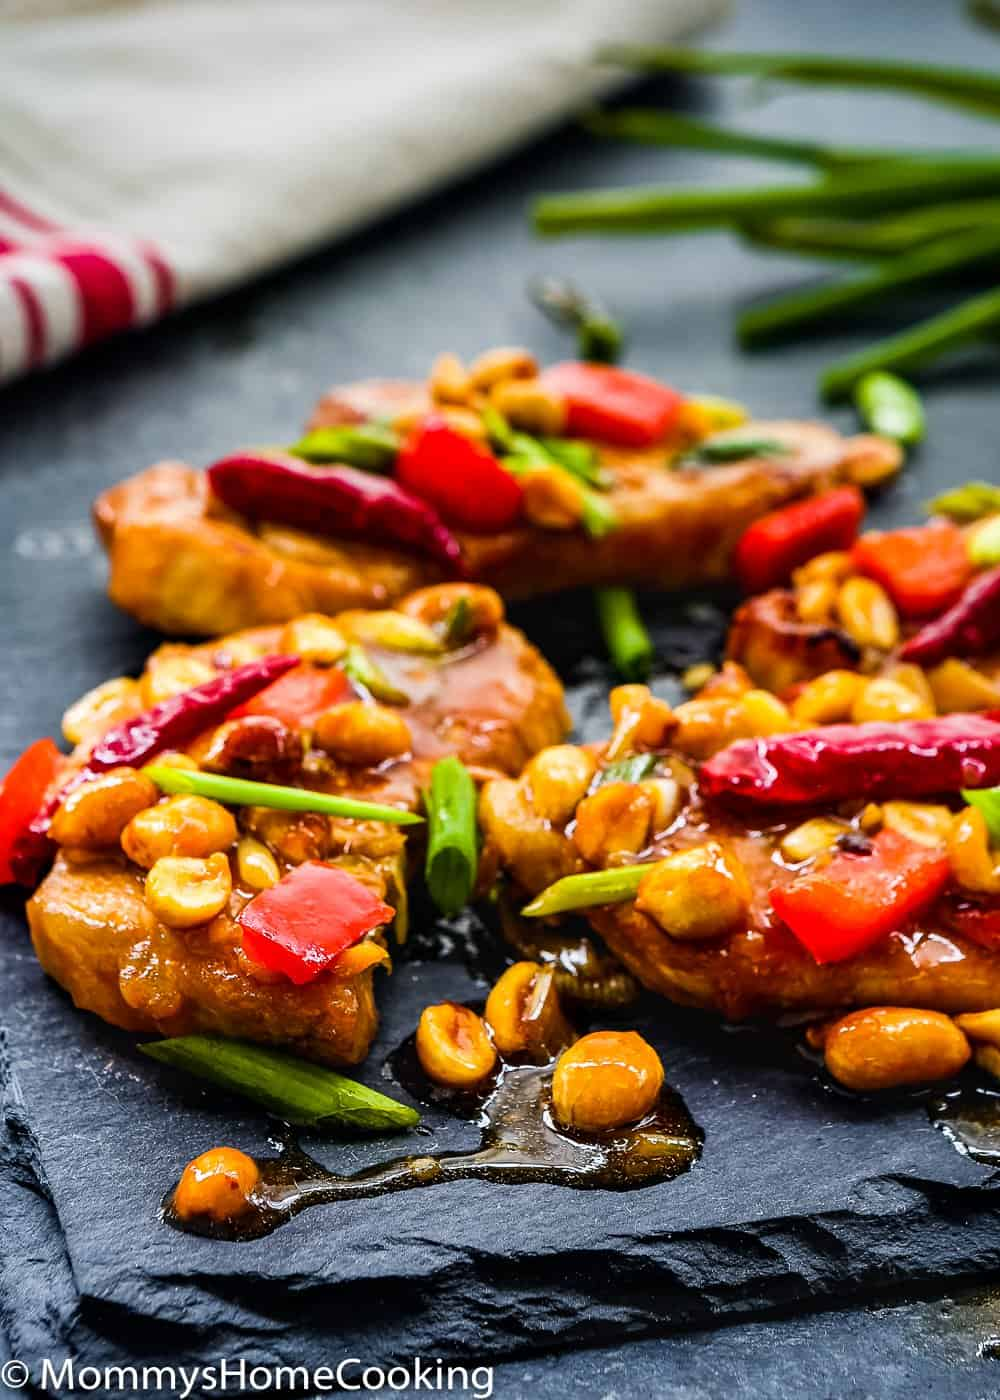 Easy Kung Pao Pork Chops with peanuts and sauce